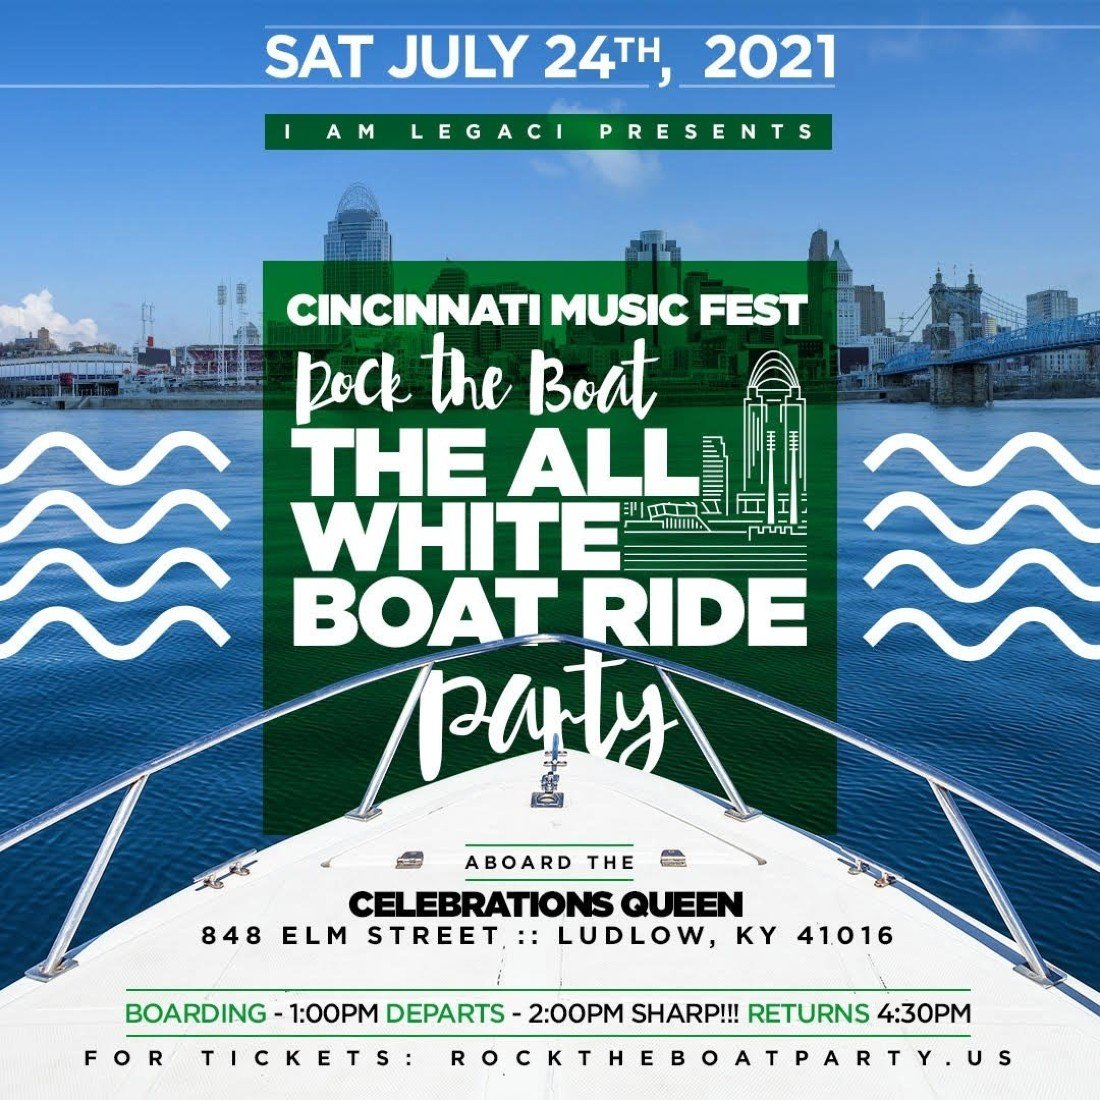 ROCK THE BOAT ALL WHITE BOAT RIDE DAY PARTY CINCINNATI MUSIC FESTIVAL 2021, 24 July | Online Event | AllEvents.in